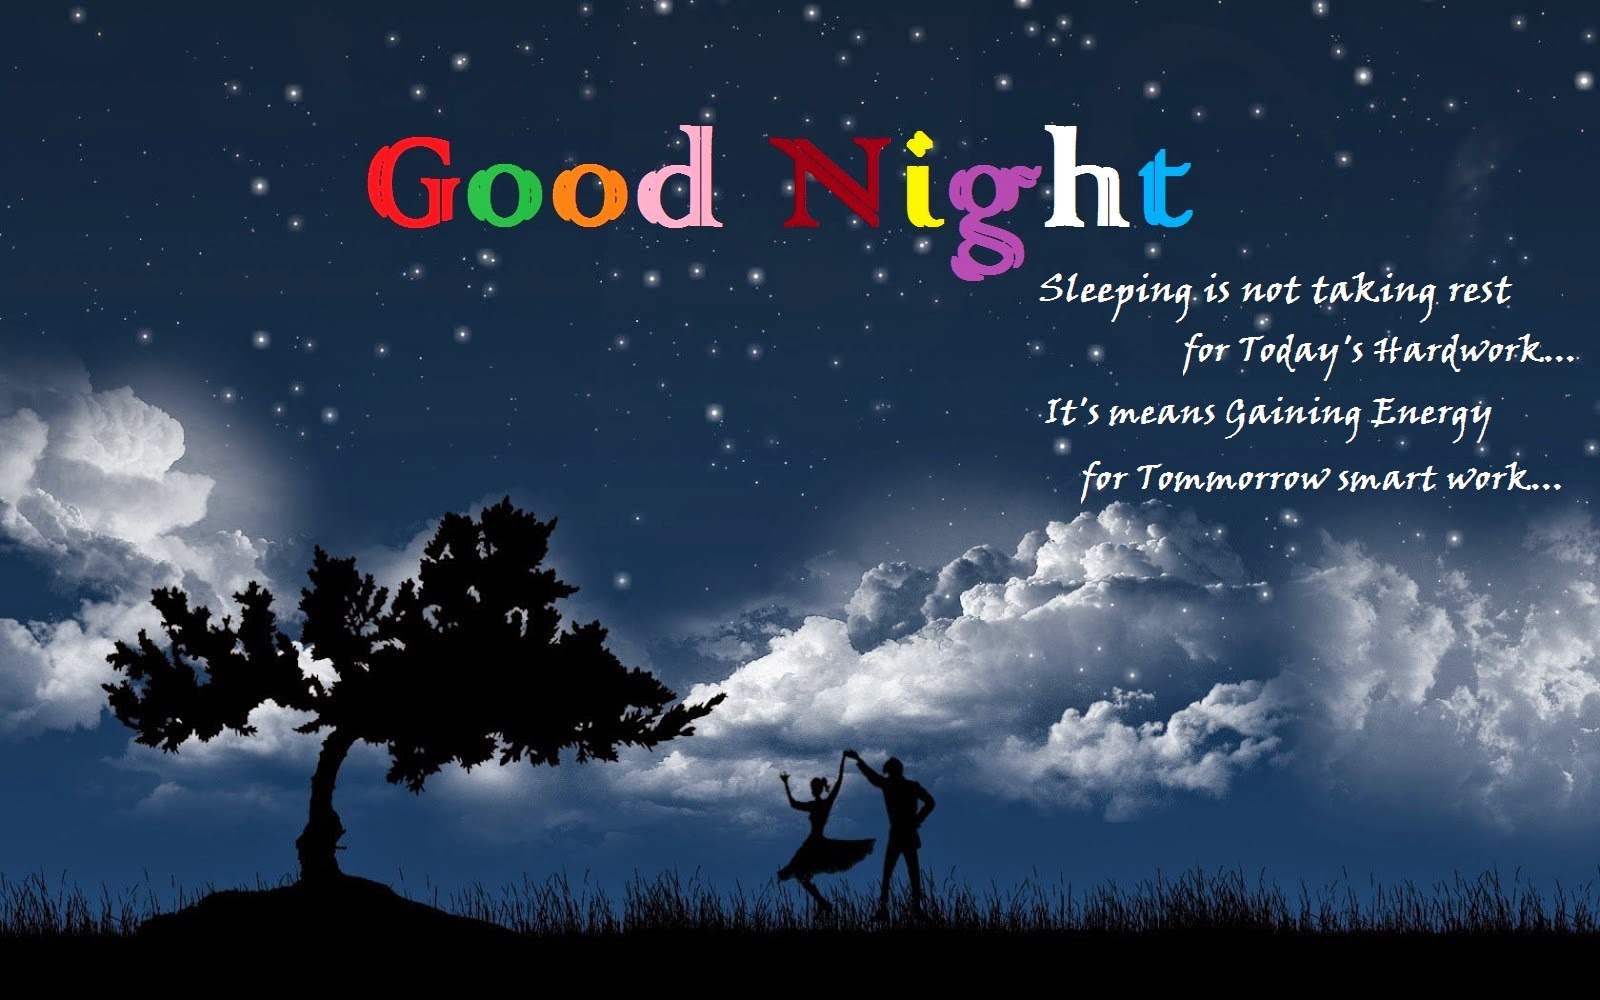 Good Night Images, Good Night Wallpapers and Pictures for facebook 1600x1000